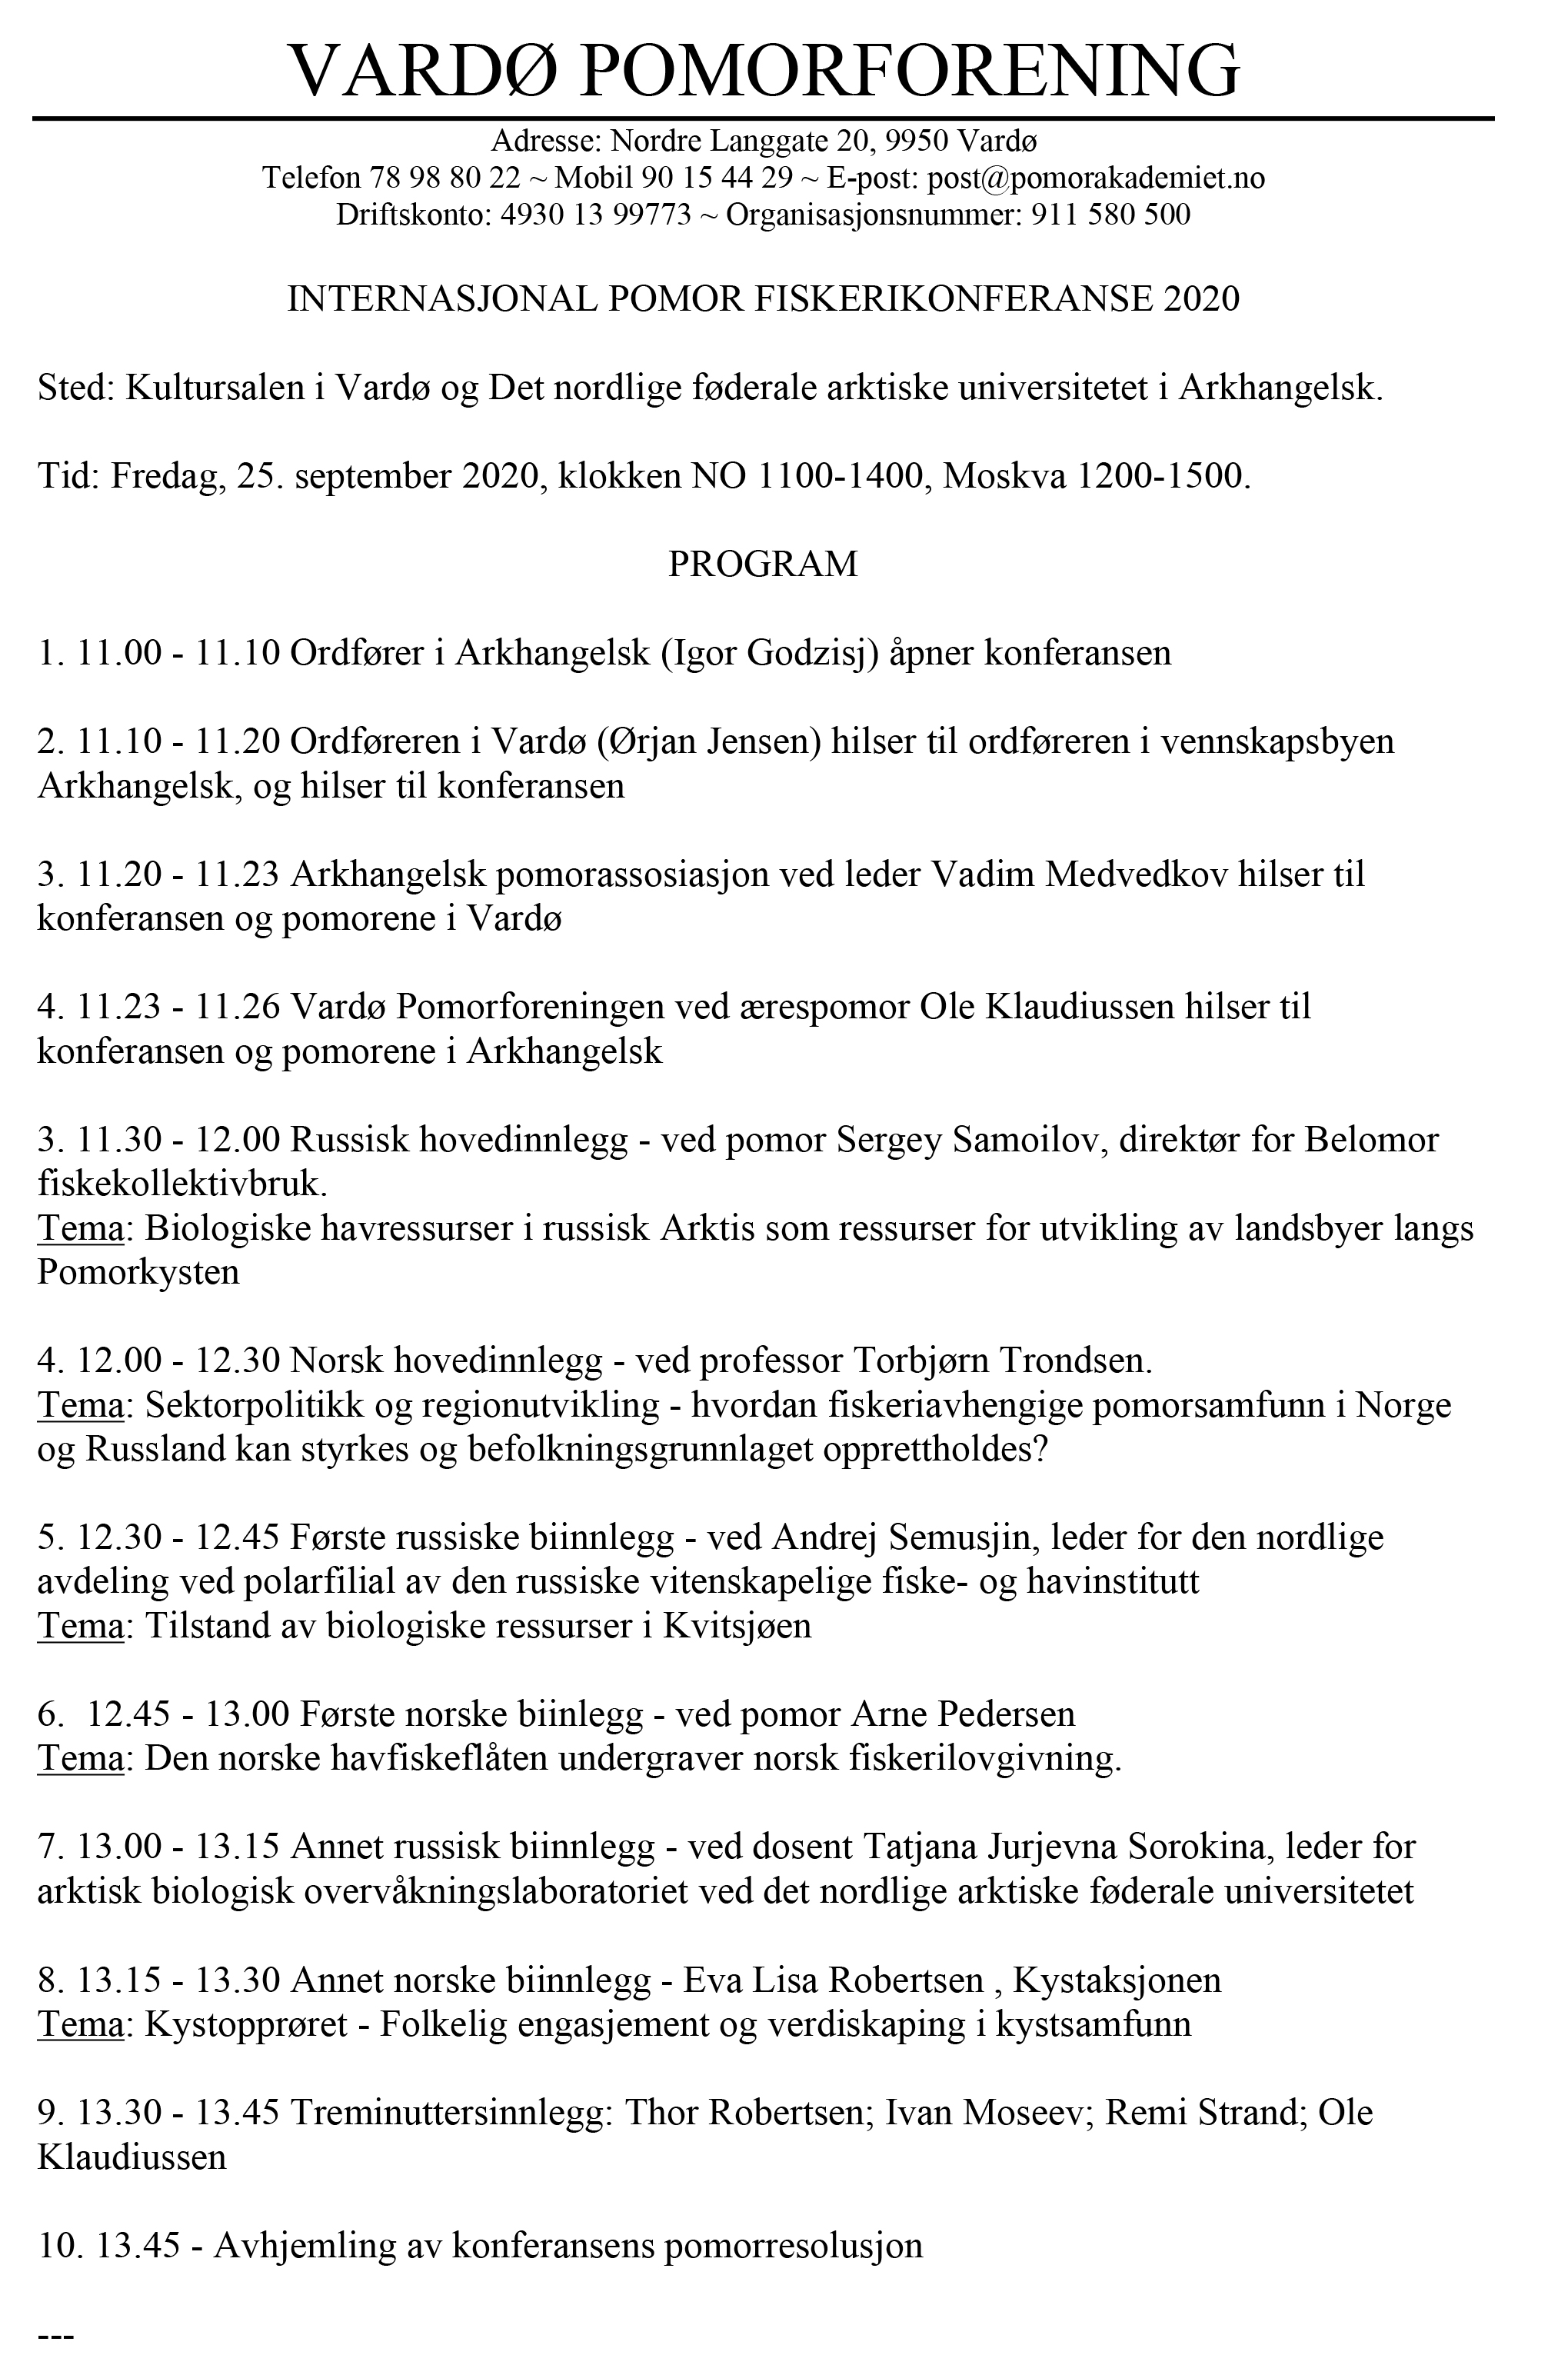 Program fiskerikonferanse